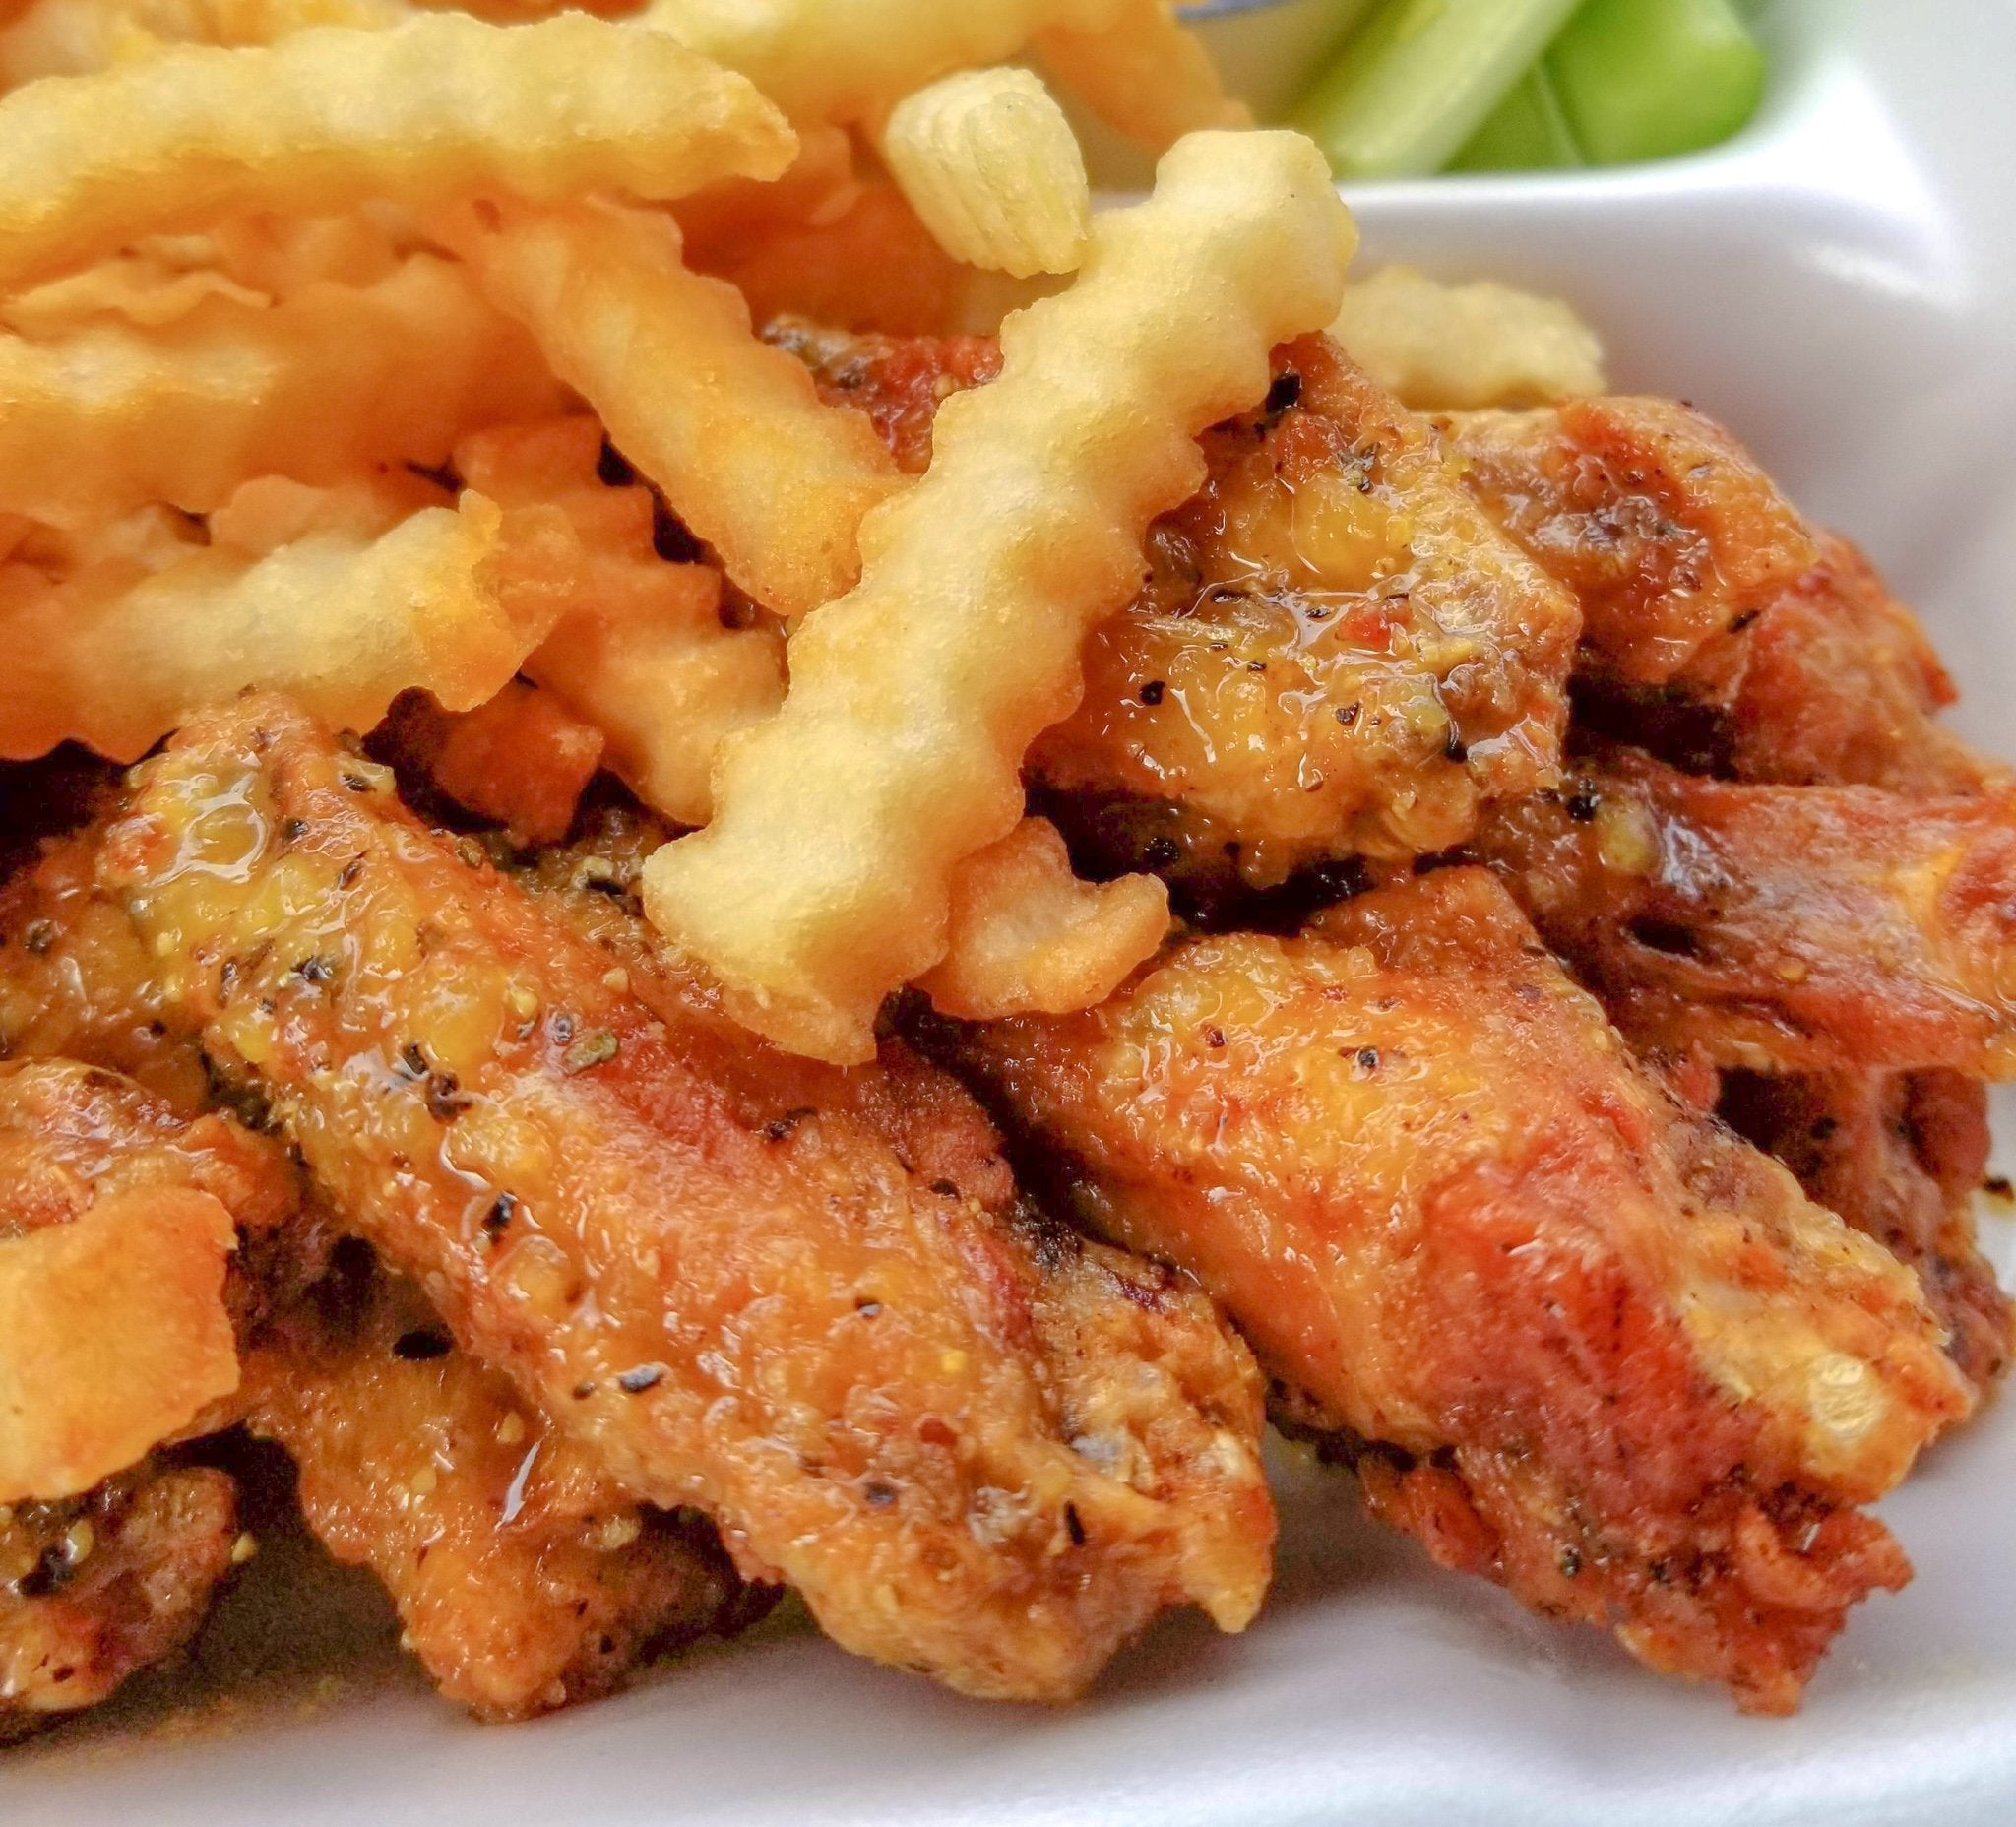 Travelogue:  Your Guide To ATL Lemon Pepper Wings